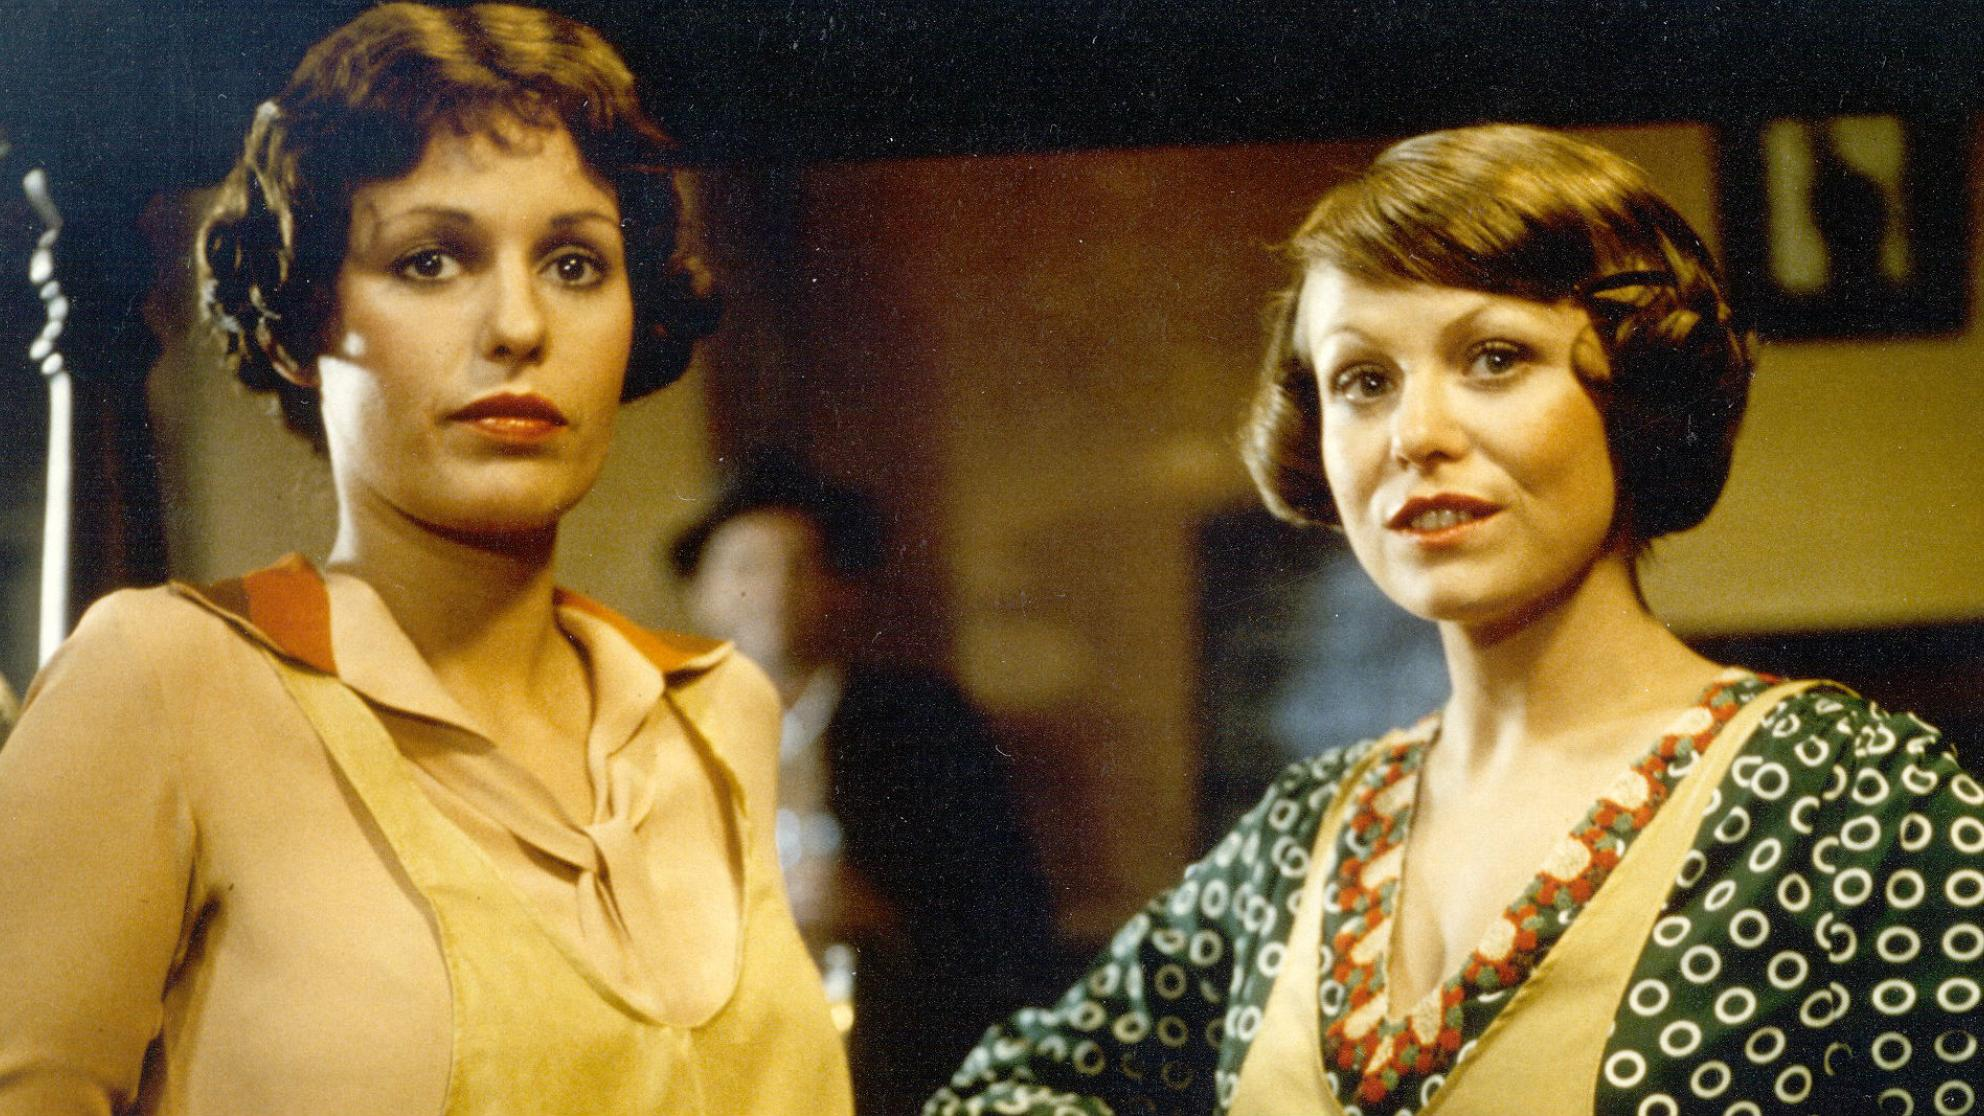 Helen Morse and Jacki Weaver in a scene from the film Caddie.